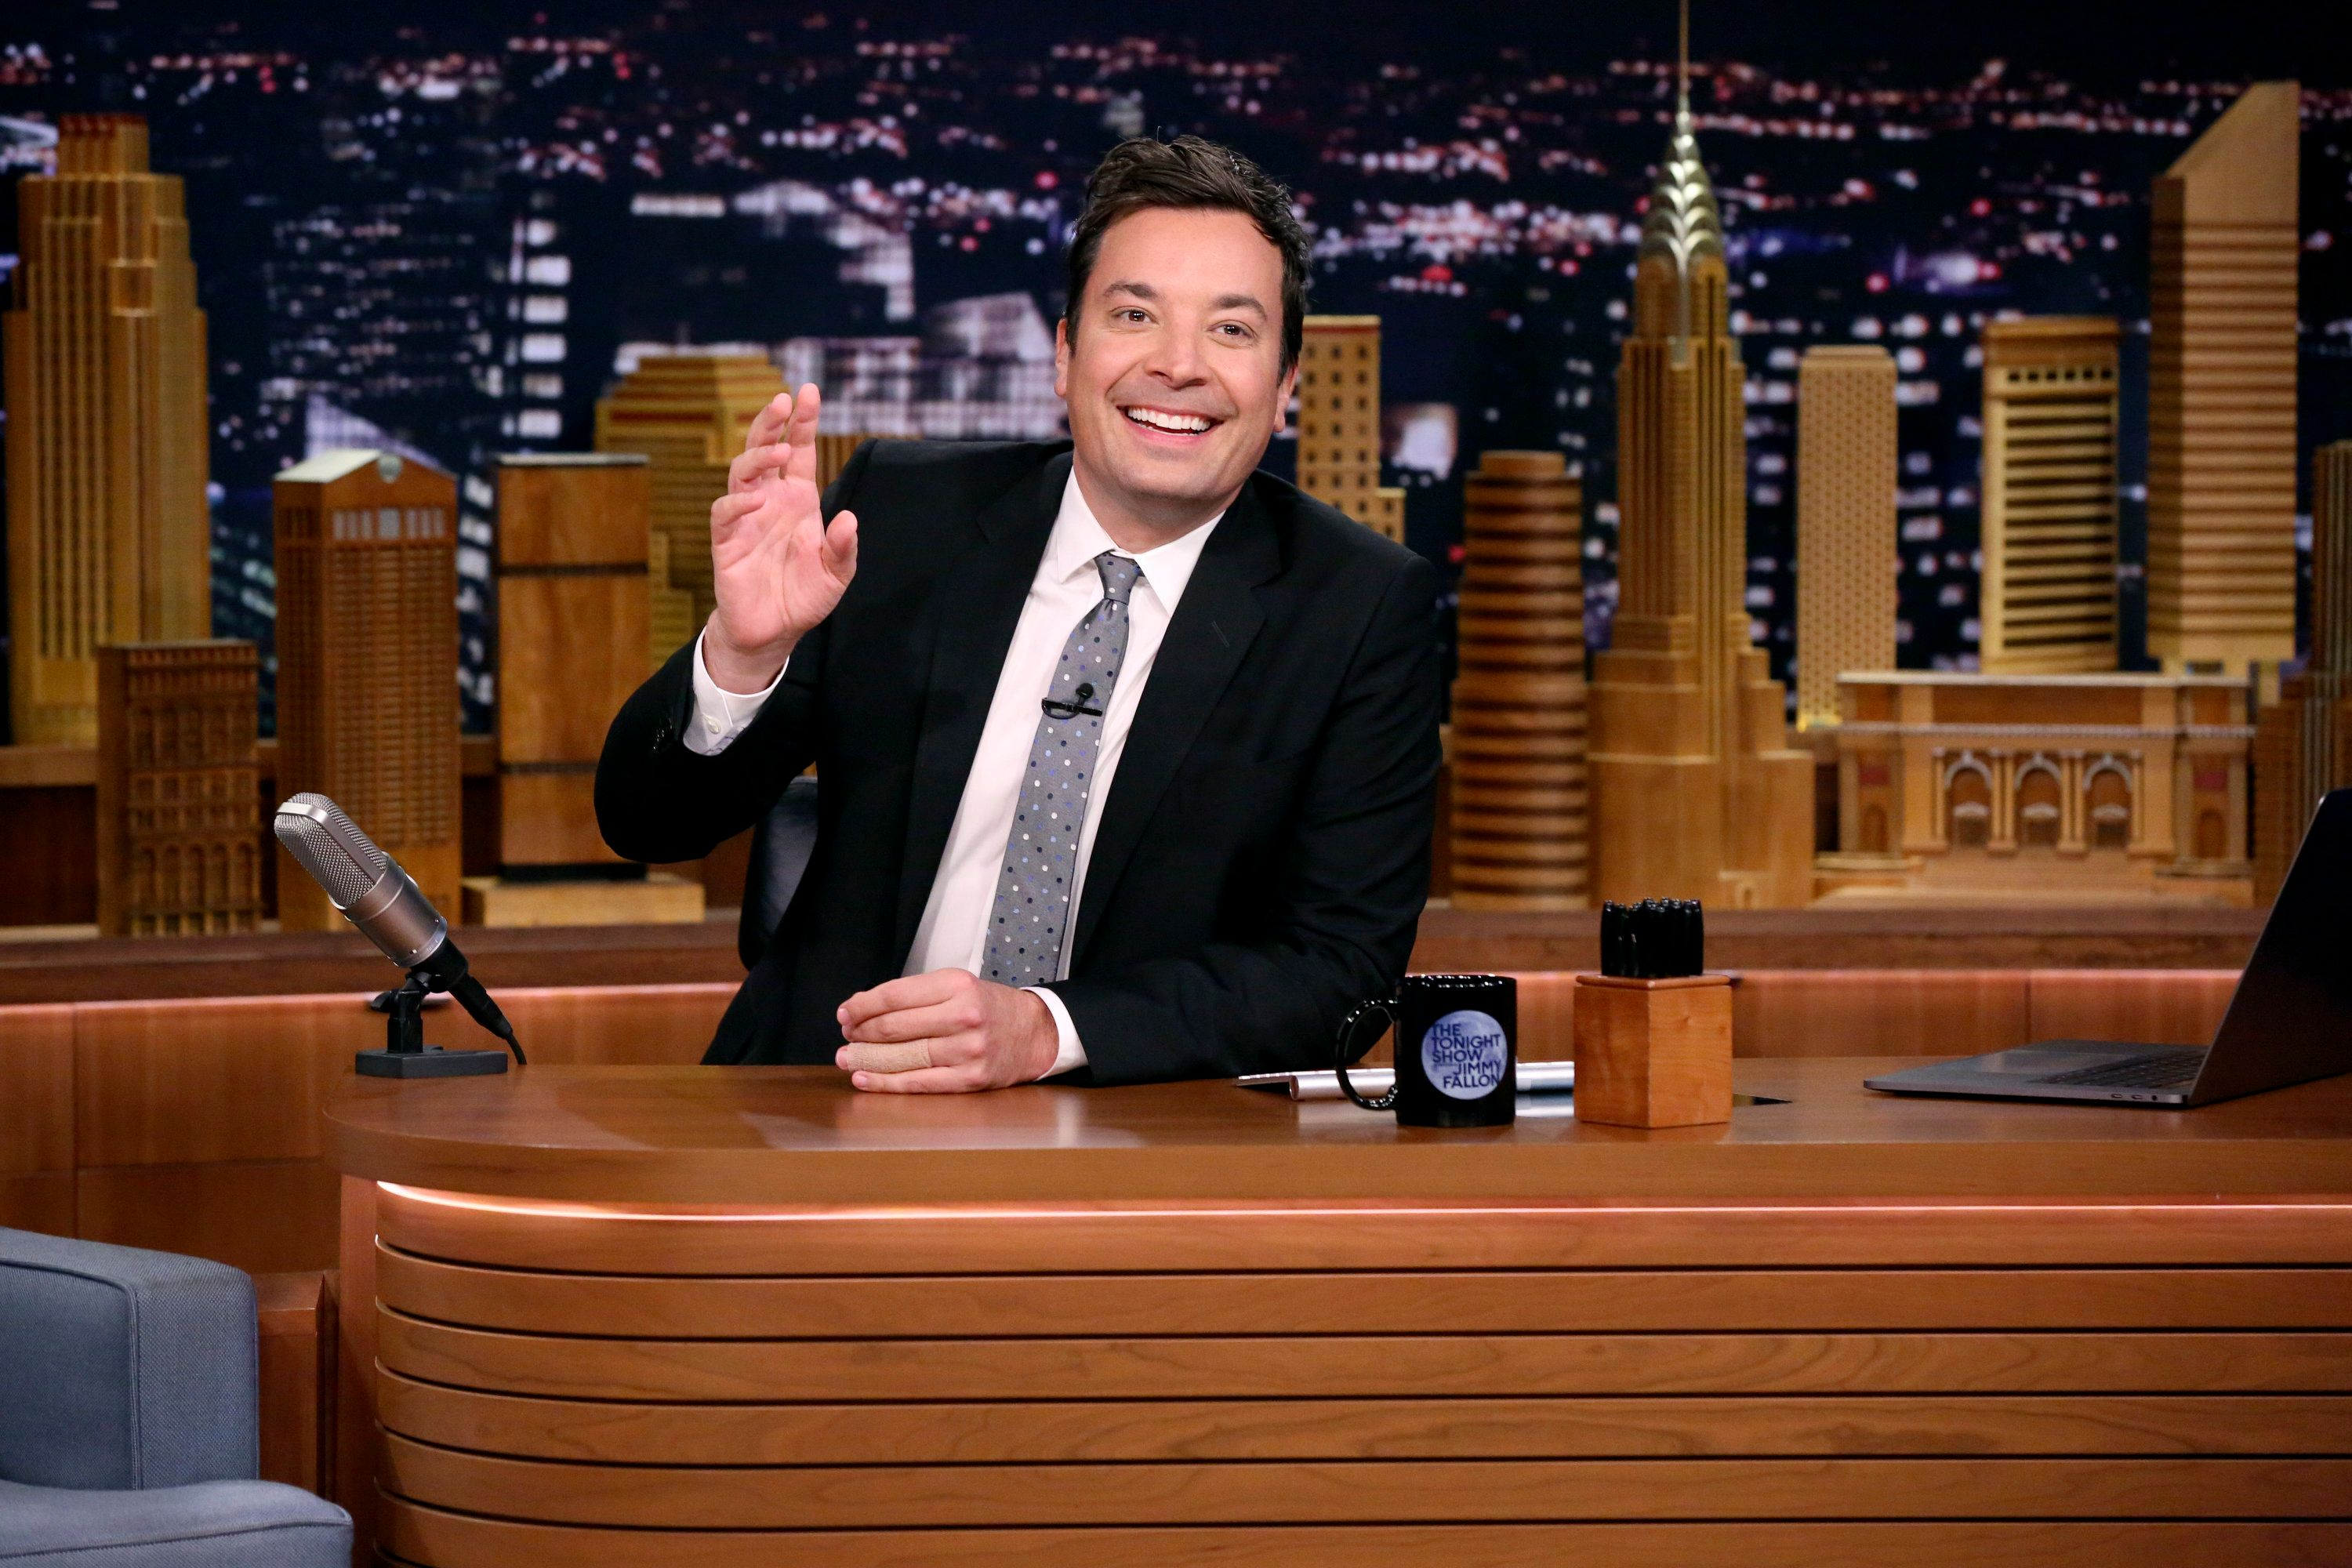 Jimmy Fallon's mother Gloria dies in NY hospital